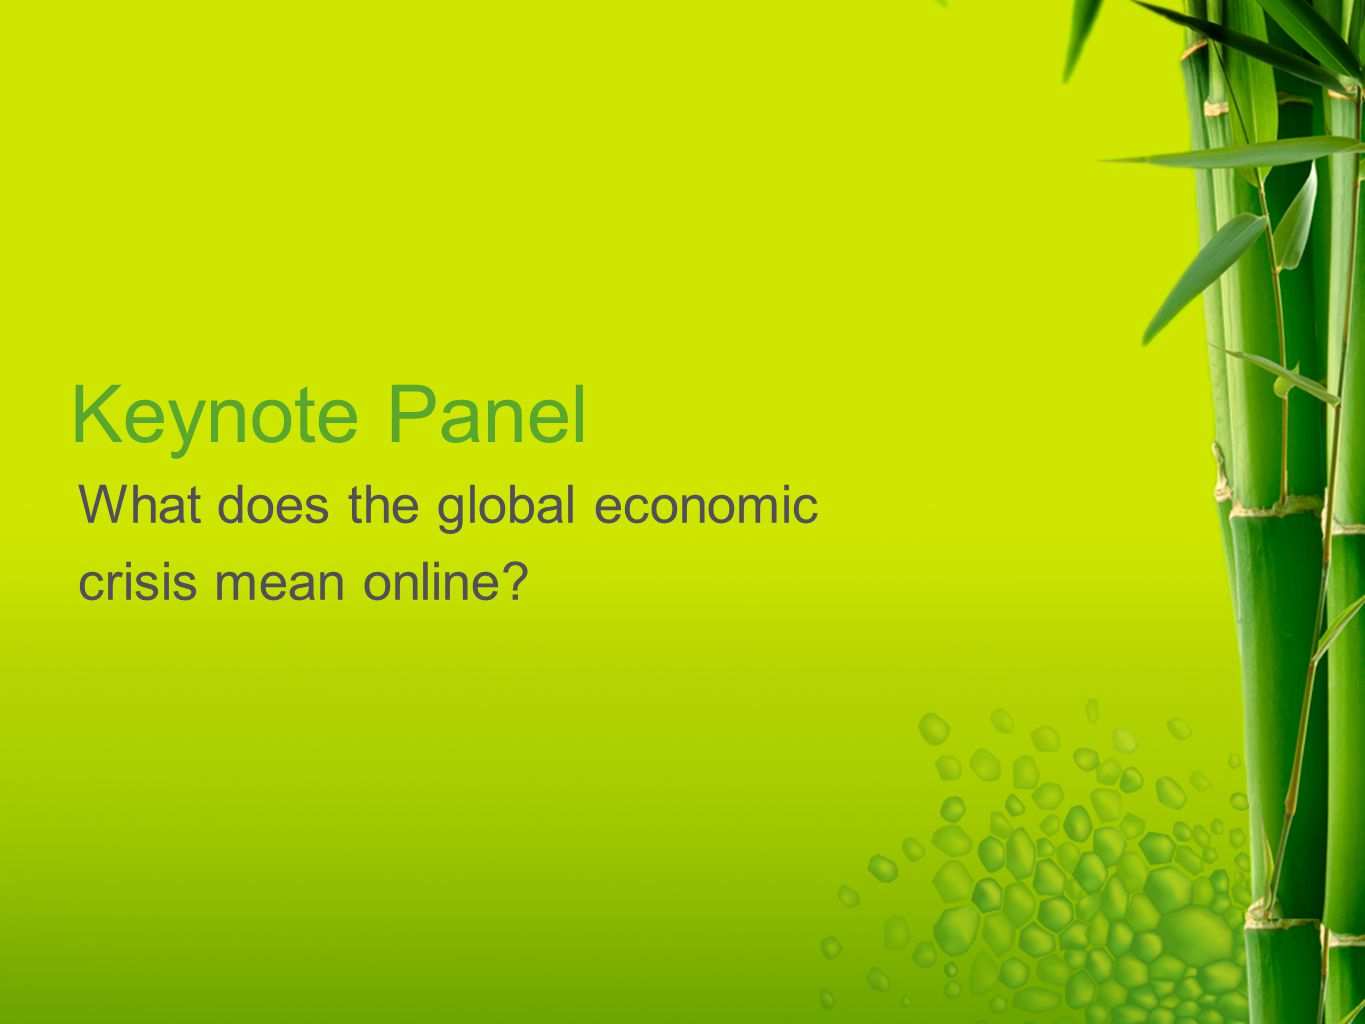 Keynote Panel What does the global economic crisis mean online